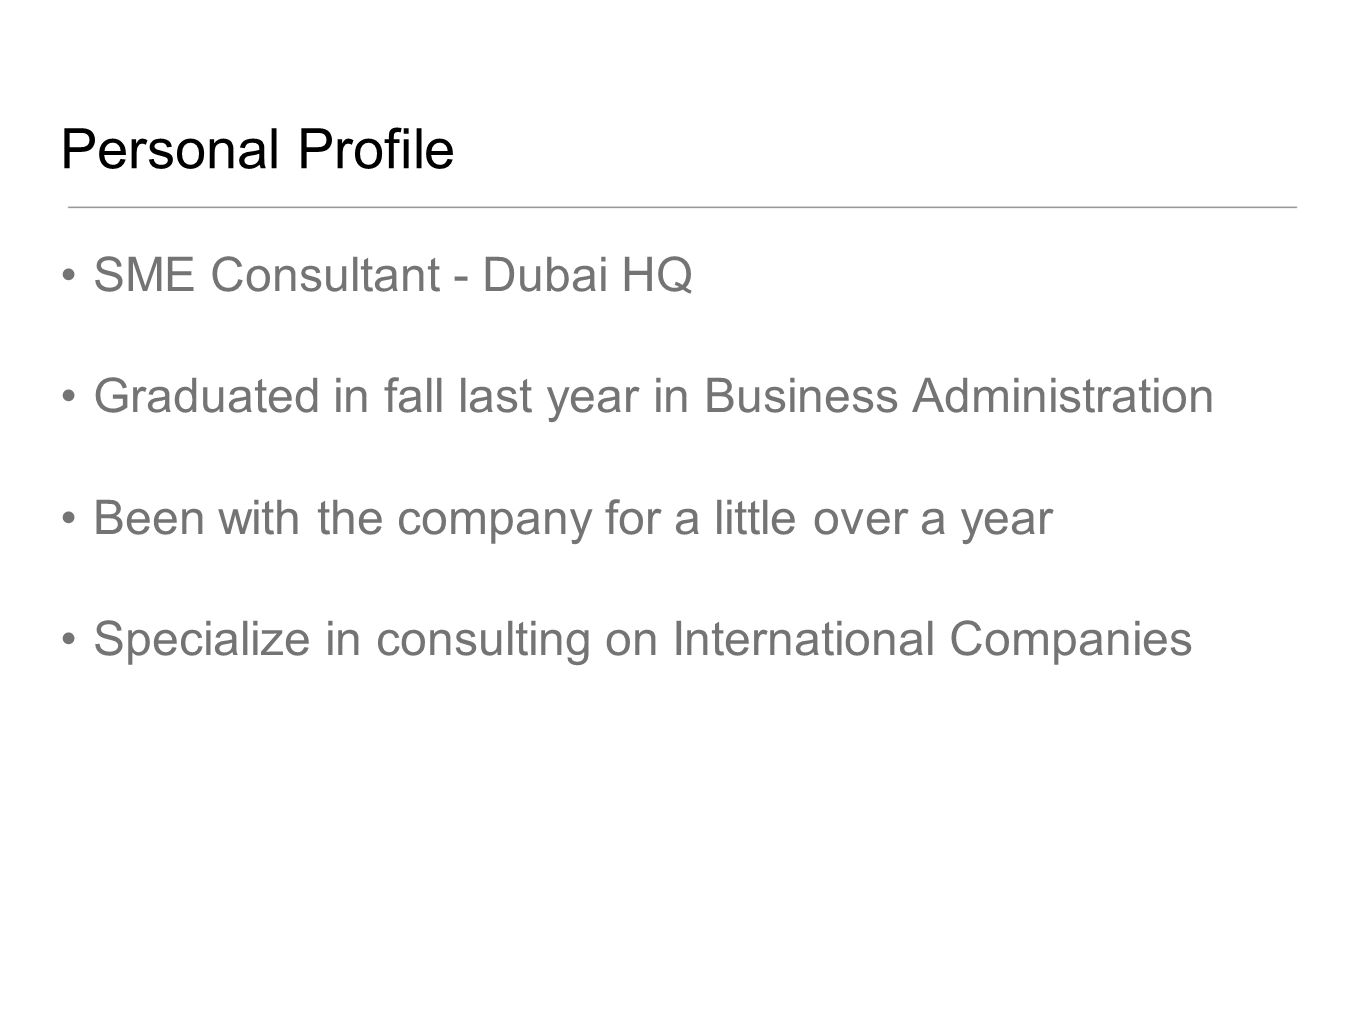 Personal Profile SME Consultant - Dubai HQ Graduated in fall last year in Business Administration Been with the company for a little over a year Specialize in consulting on International Companies